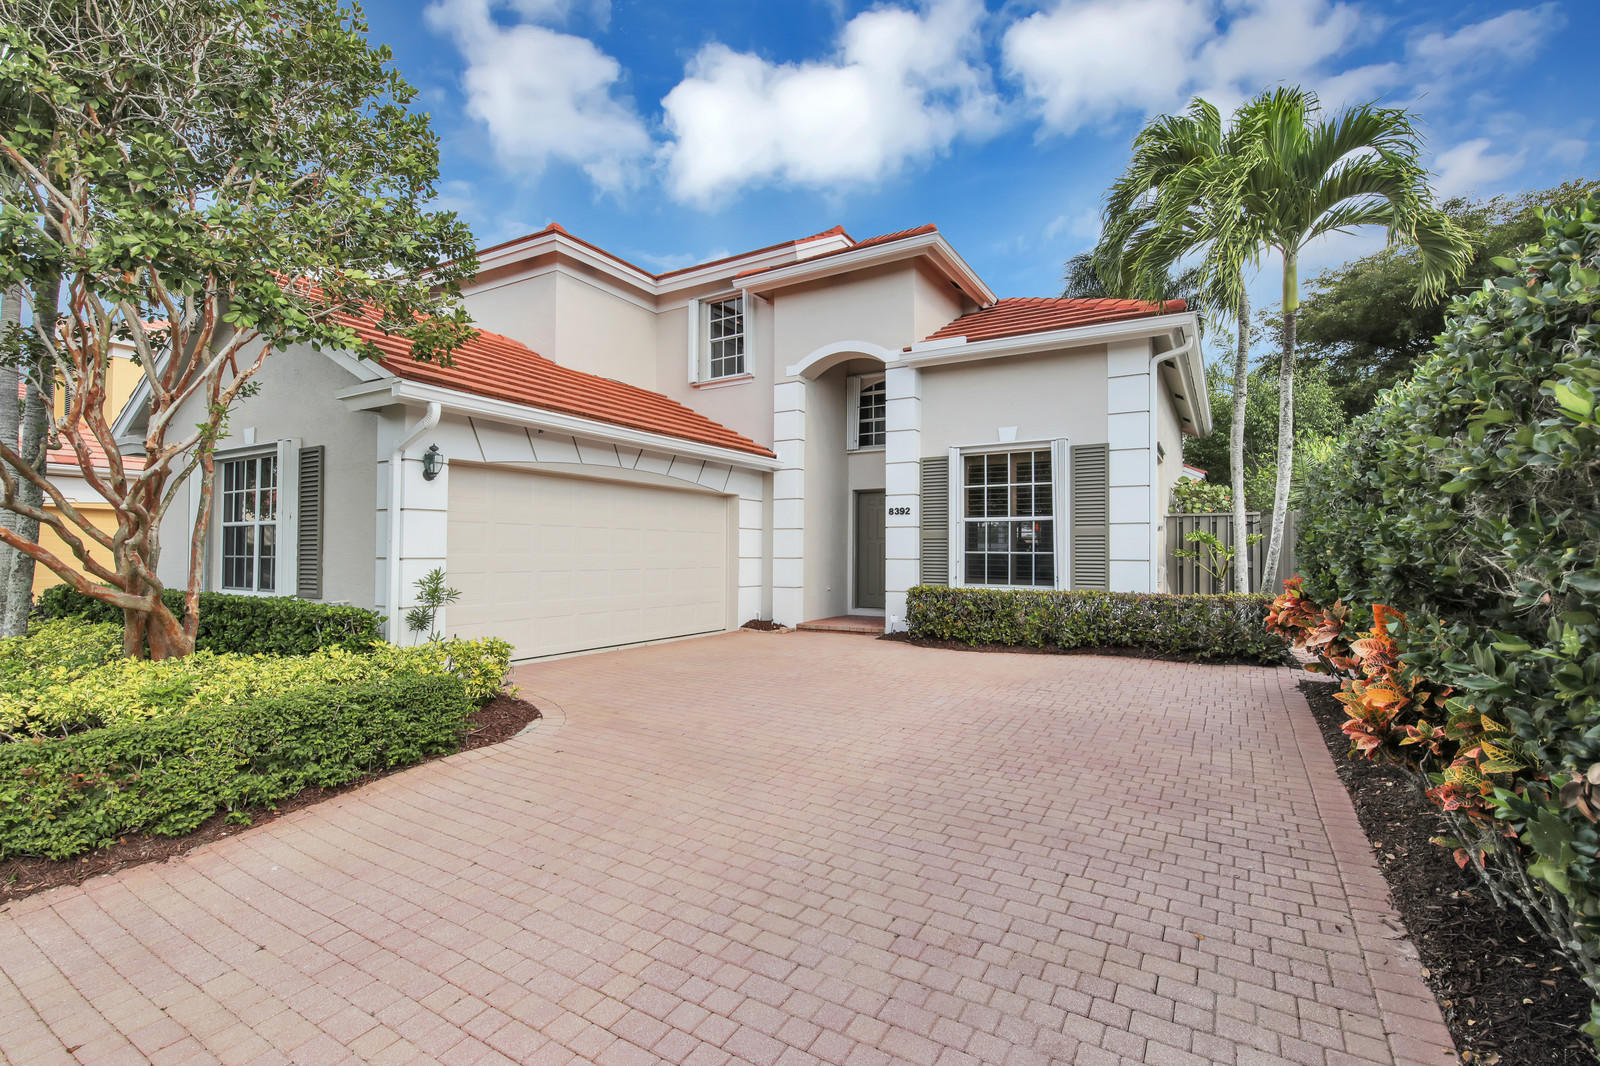 8392 Heritage Club Drive, West Palm Beach, Florida 33412, 3 Bedrooms Bedrooms, ,2.1 BathroomsBathrooms,A,Single family,Heritage Club,RX-10599642